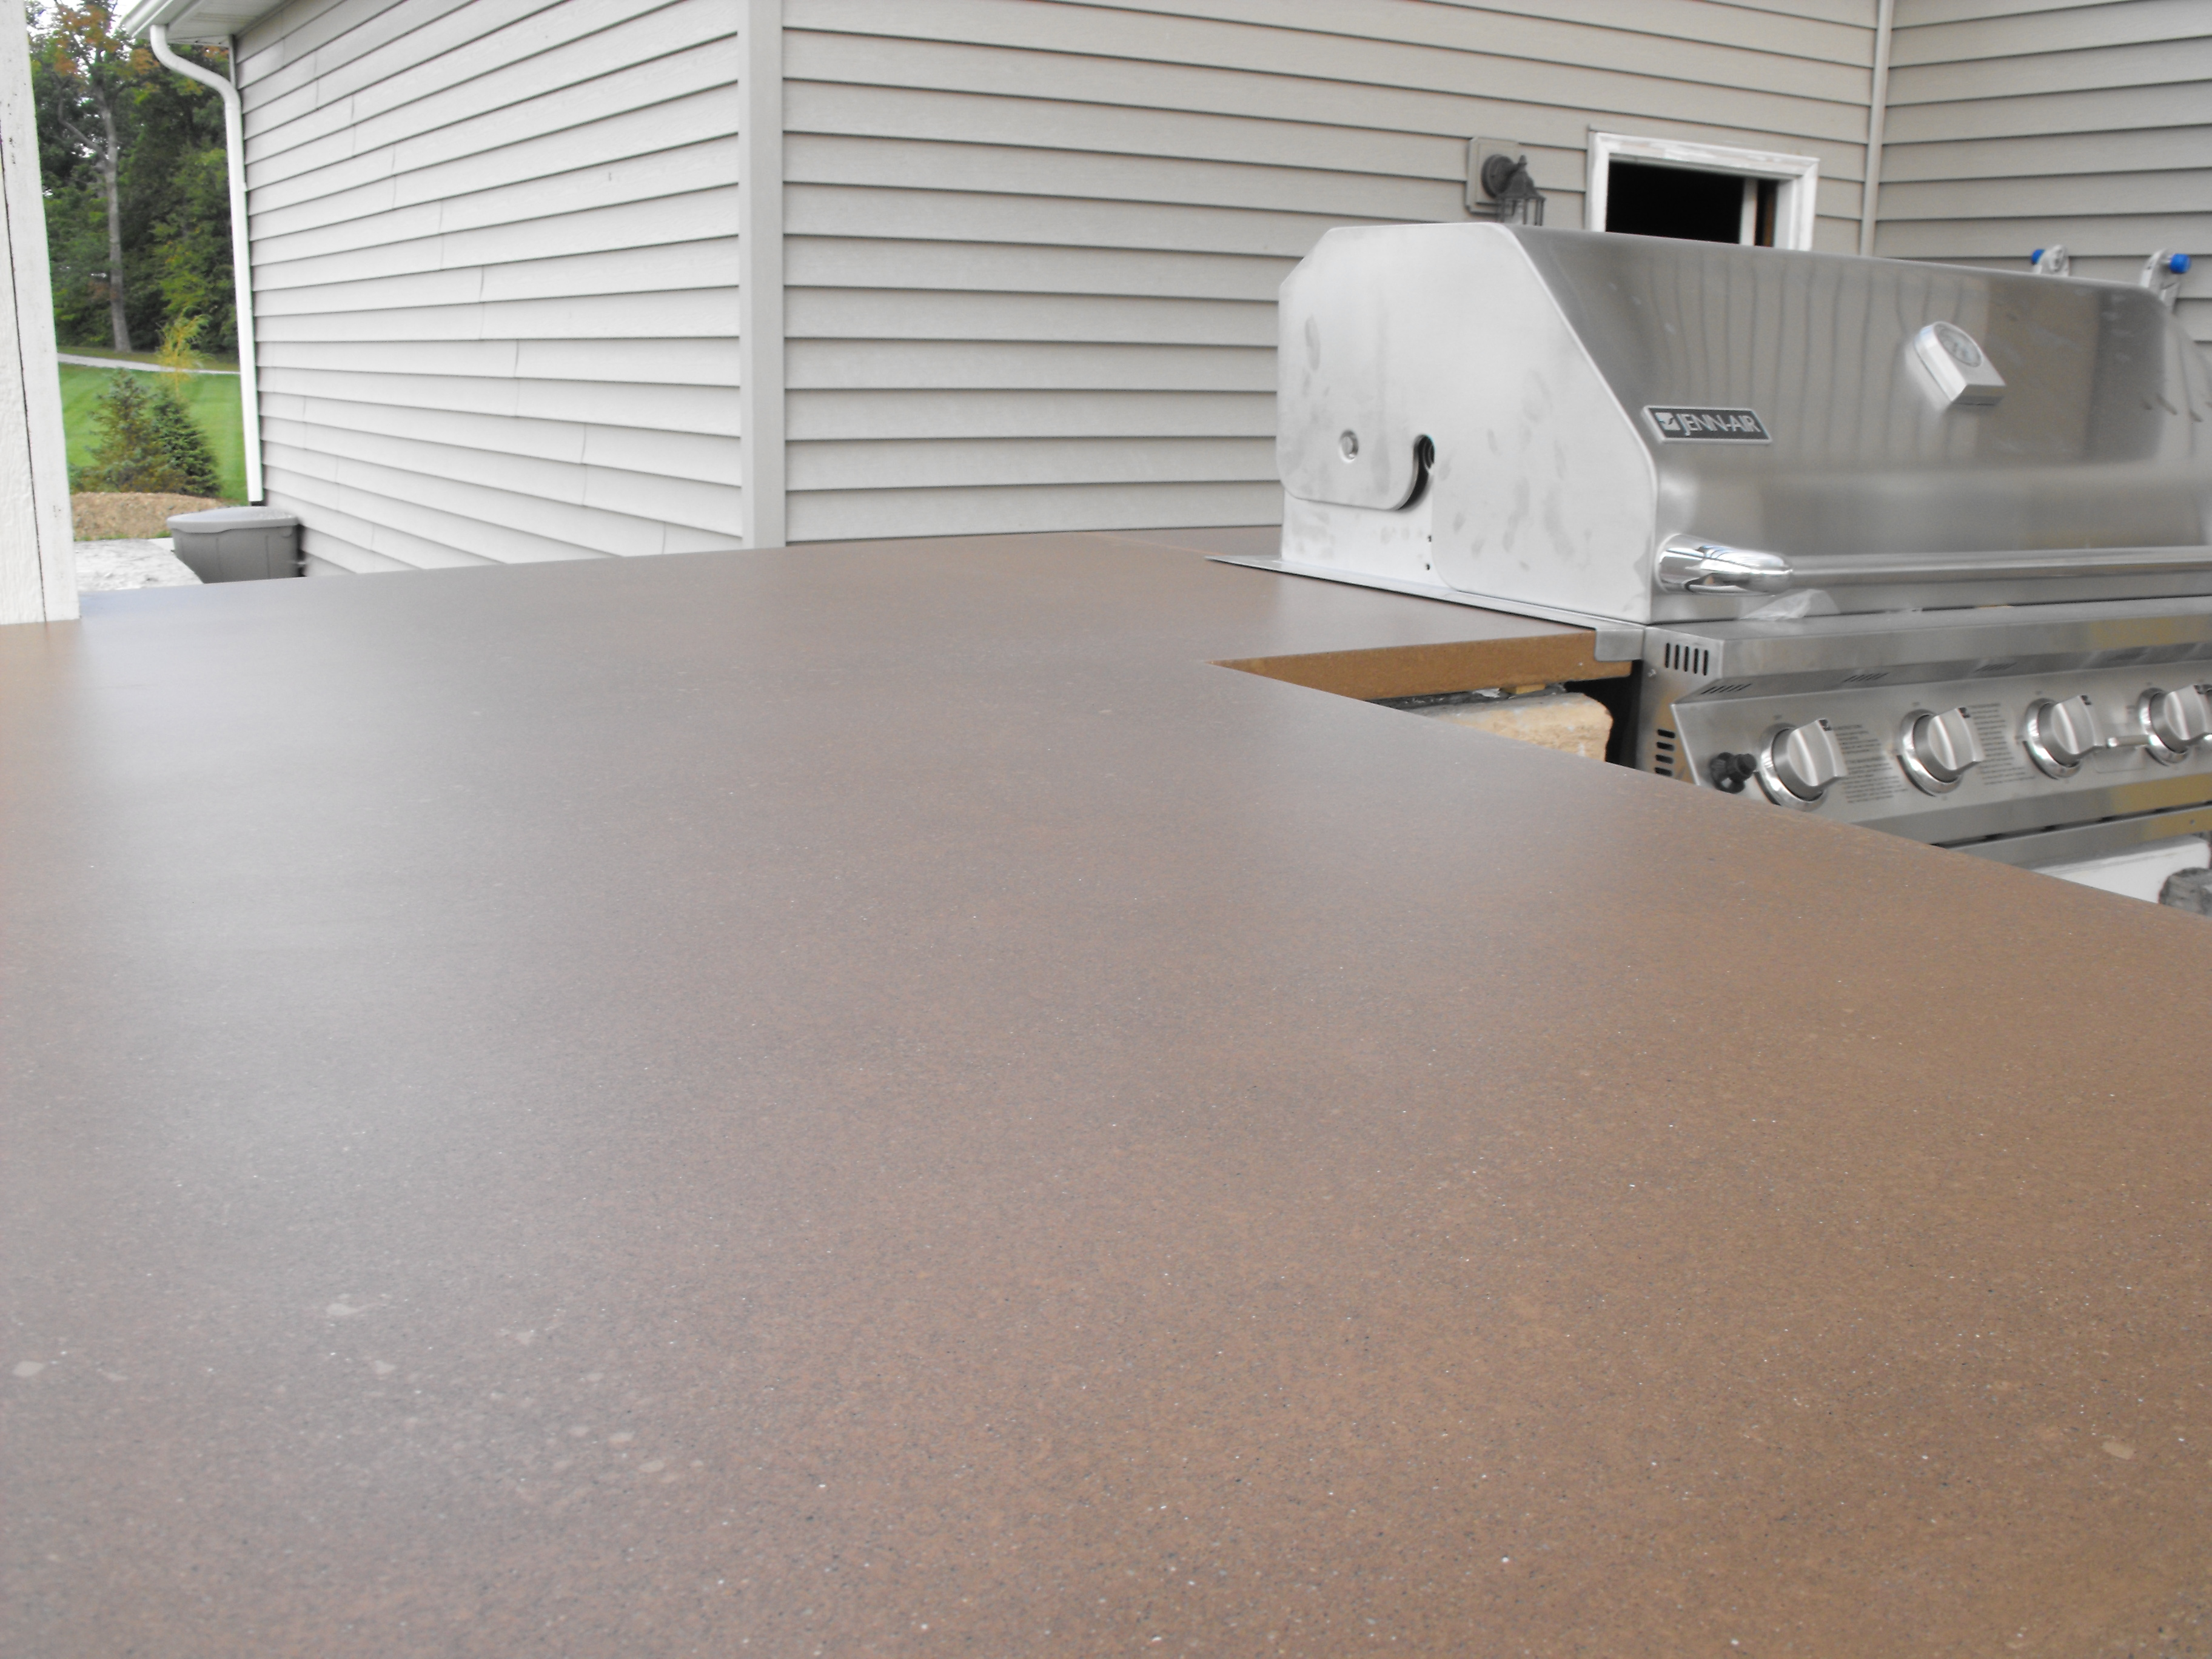 How To Seal Concrete Countertops The Best Sealer For Concrete Countertops Cozy With Concrete